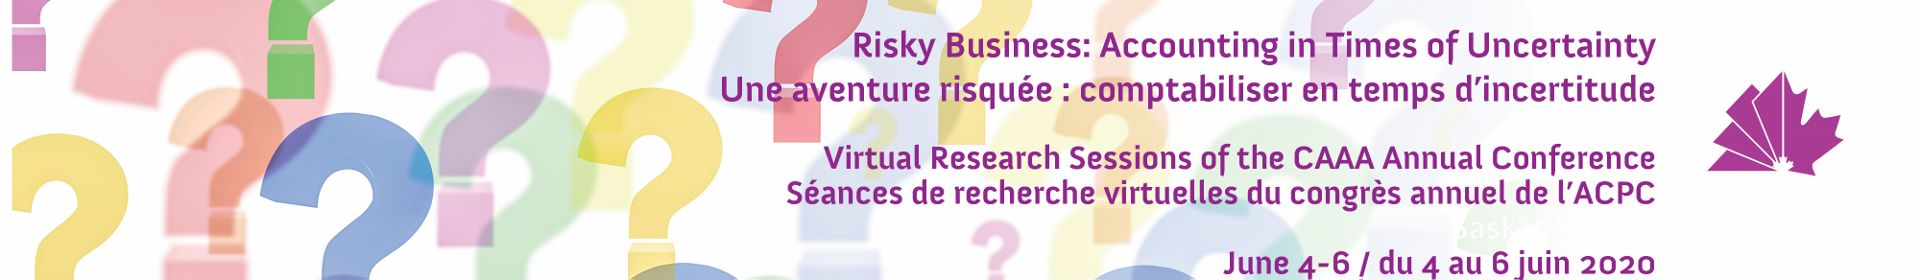 2020 CAAA virtual research sessions / Séances de recherce virtuelles 2020 de l'ACPC Event Banner